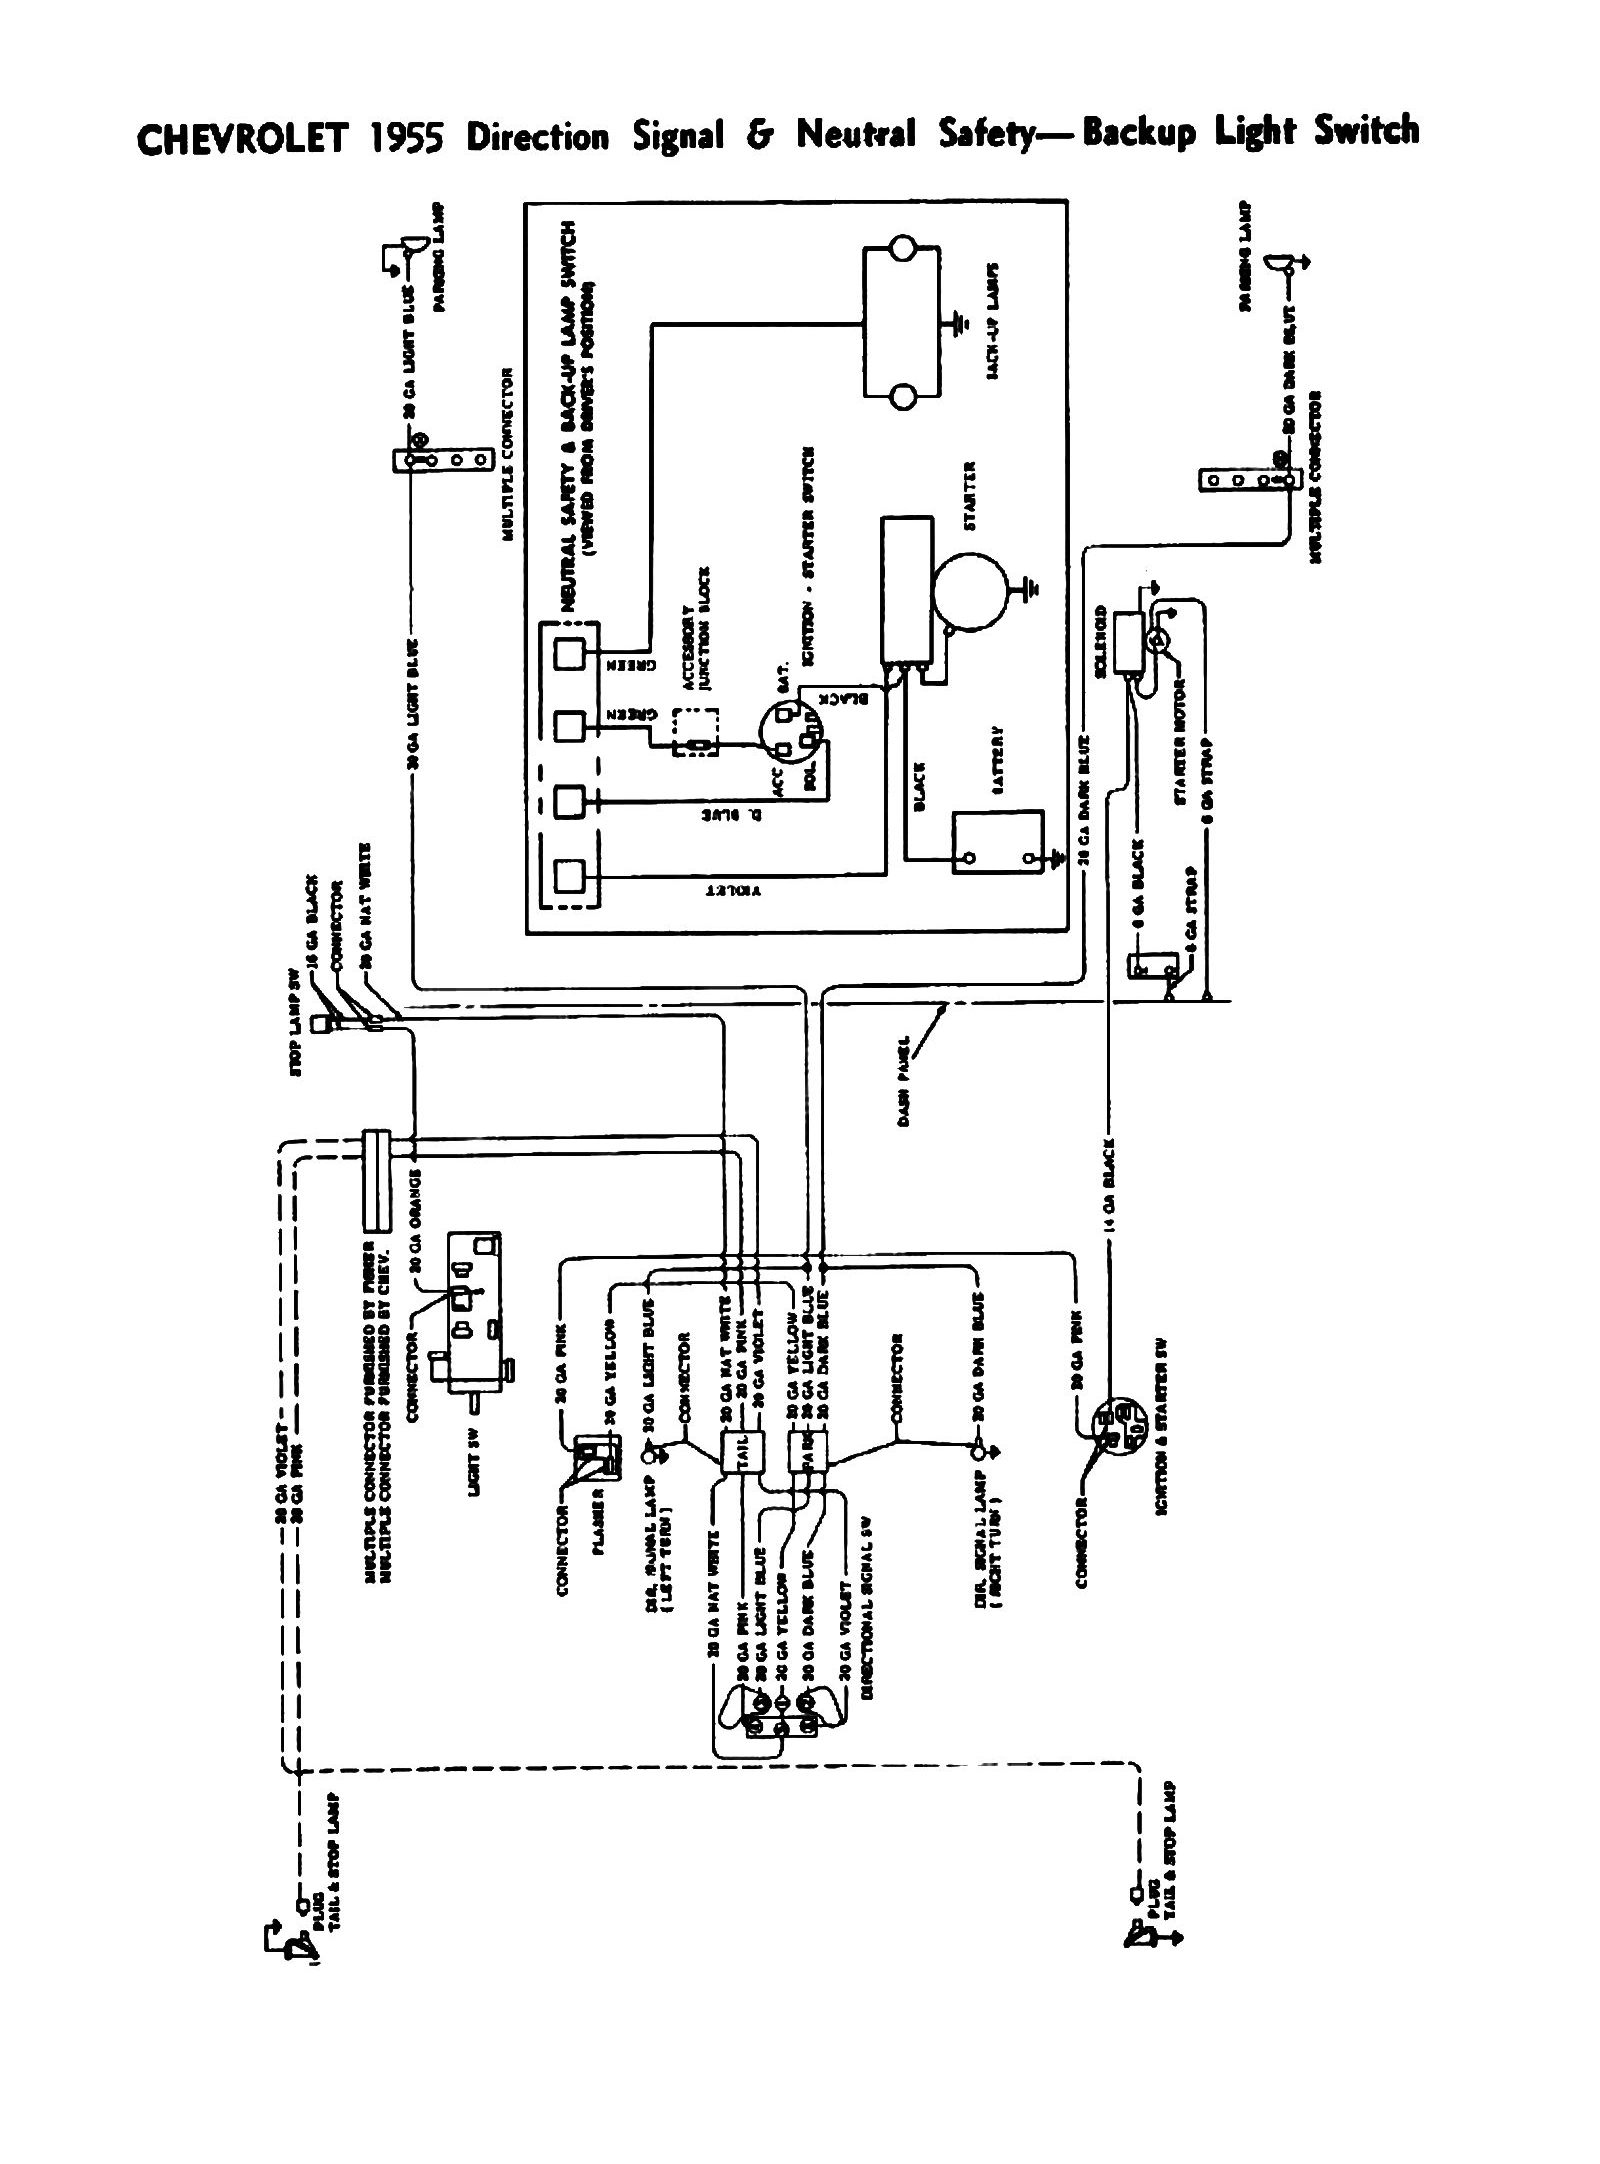 pontiac trans sport wiring diagram with Wiring on 1998 Ford E350 Diesel Van Fuse Box Diagram further 2001 Pontiac Montana Heater Hose Diagram as well 2000 Jeep Engine Parts furthermore X  Radio Wiring Diagram moreover 1380332 Hvac Fan Blower Motor Blasts 4 Low 2 3 Dont Do Much You Too.